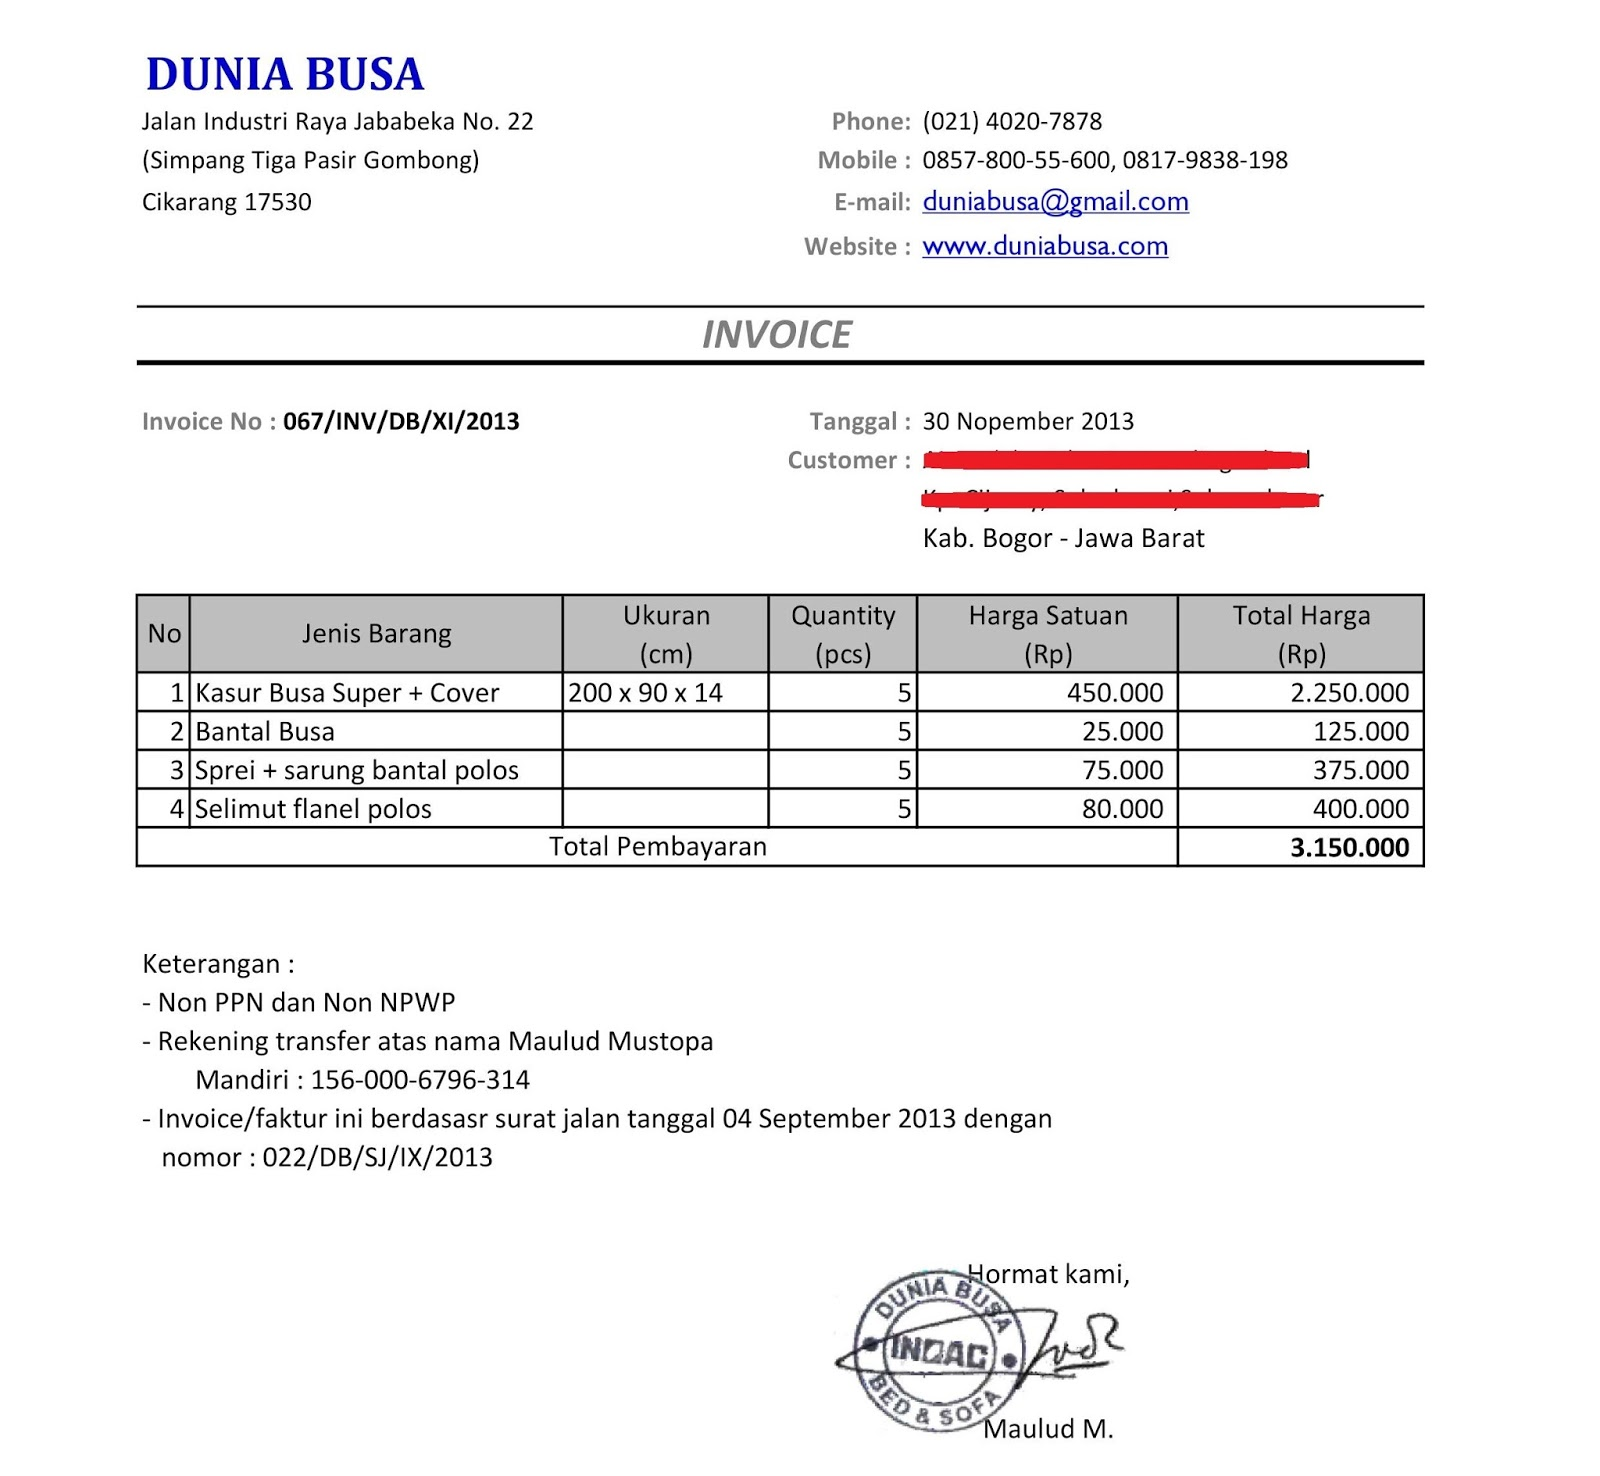 Coachoutletonlineplusus  Surprising Free Invoice Online  Create Invoice Online  Invoice Template  With Entrancing Contoh Format Invoice Atau Surat Tagihan  Brankas Arsip  Free Invoice Online With Charming Dealer Invoice Price On New Cars Also  Honda Accord Exl Invoice Price In Addition Eom Invoice And Free Printable Blank Invoice Template As Well As Simple Invoices Review Additionally How To Make A Invoice On Excel From Sklepco With Coachoutletonlineplusus  Entrancing Free Invoice Online  Create Invoice Online  Invoice Template  With Charming Contoh Format Invoice Atau Surat Tagihan  Brankas Arsip  Free Invoice Online And Surprising Dealer Invoice Price On New Cars Also  Honda Accord Exl Invoice Price In Addition Eom Invoice From Sklepco